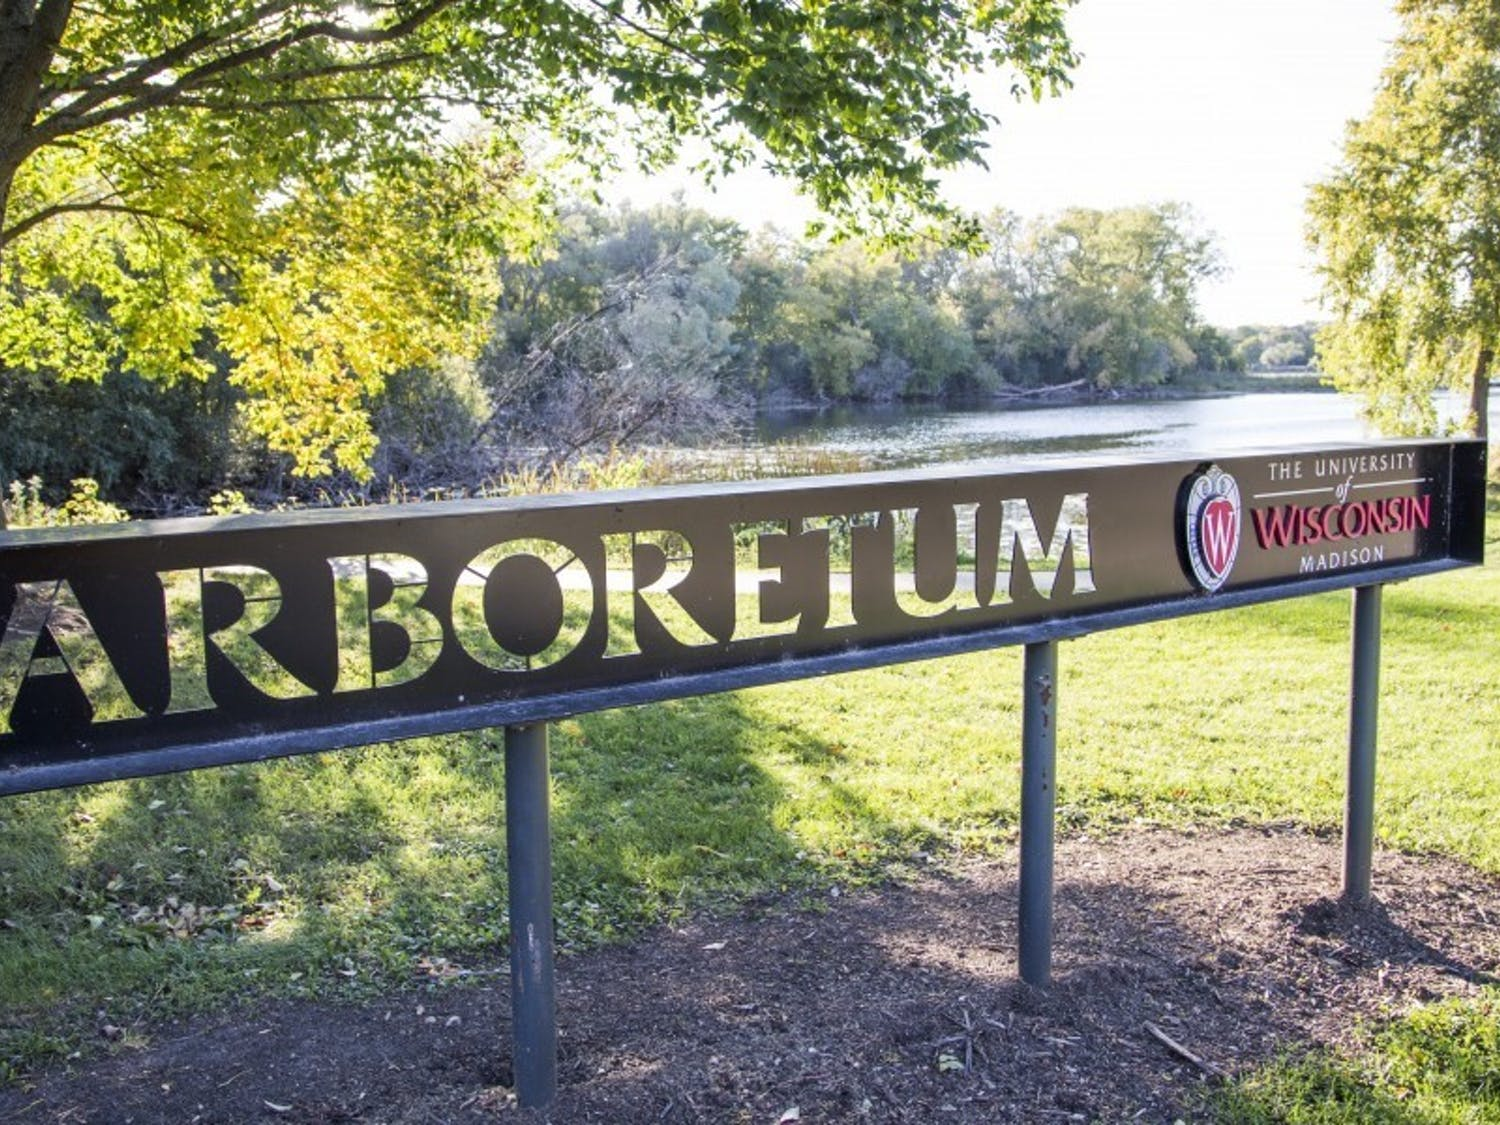 Two victims were pronounced dead after being found early Tuesday morning in the UW Arboretum.